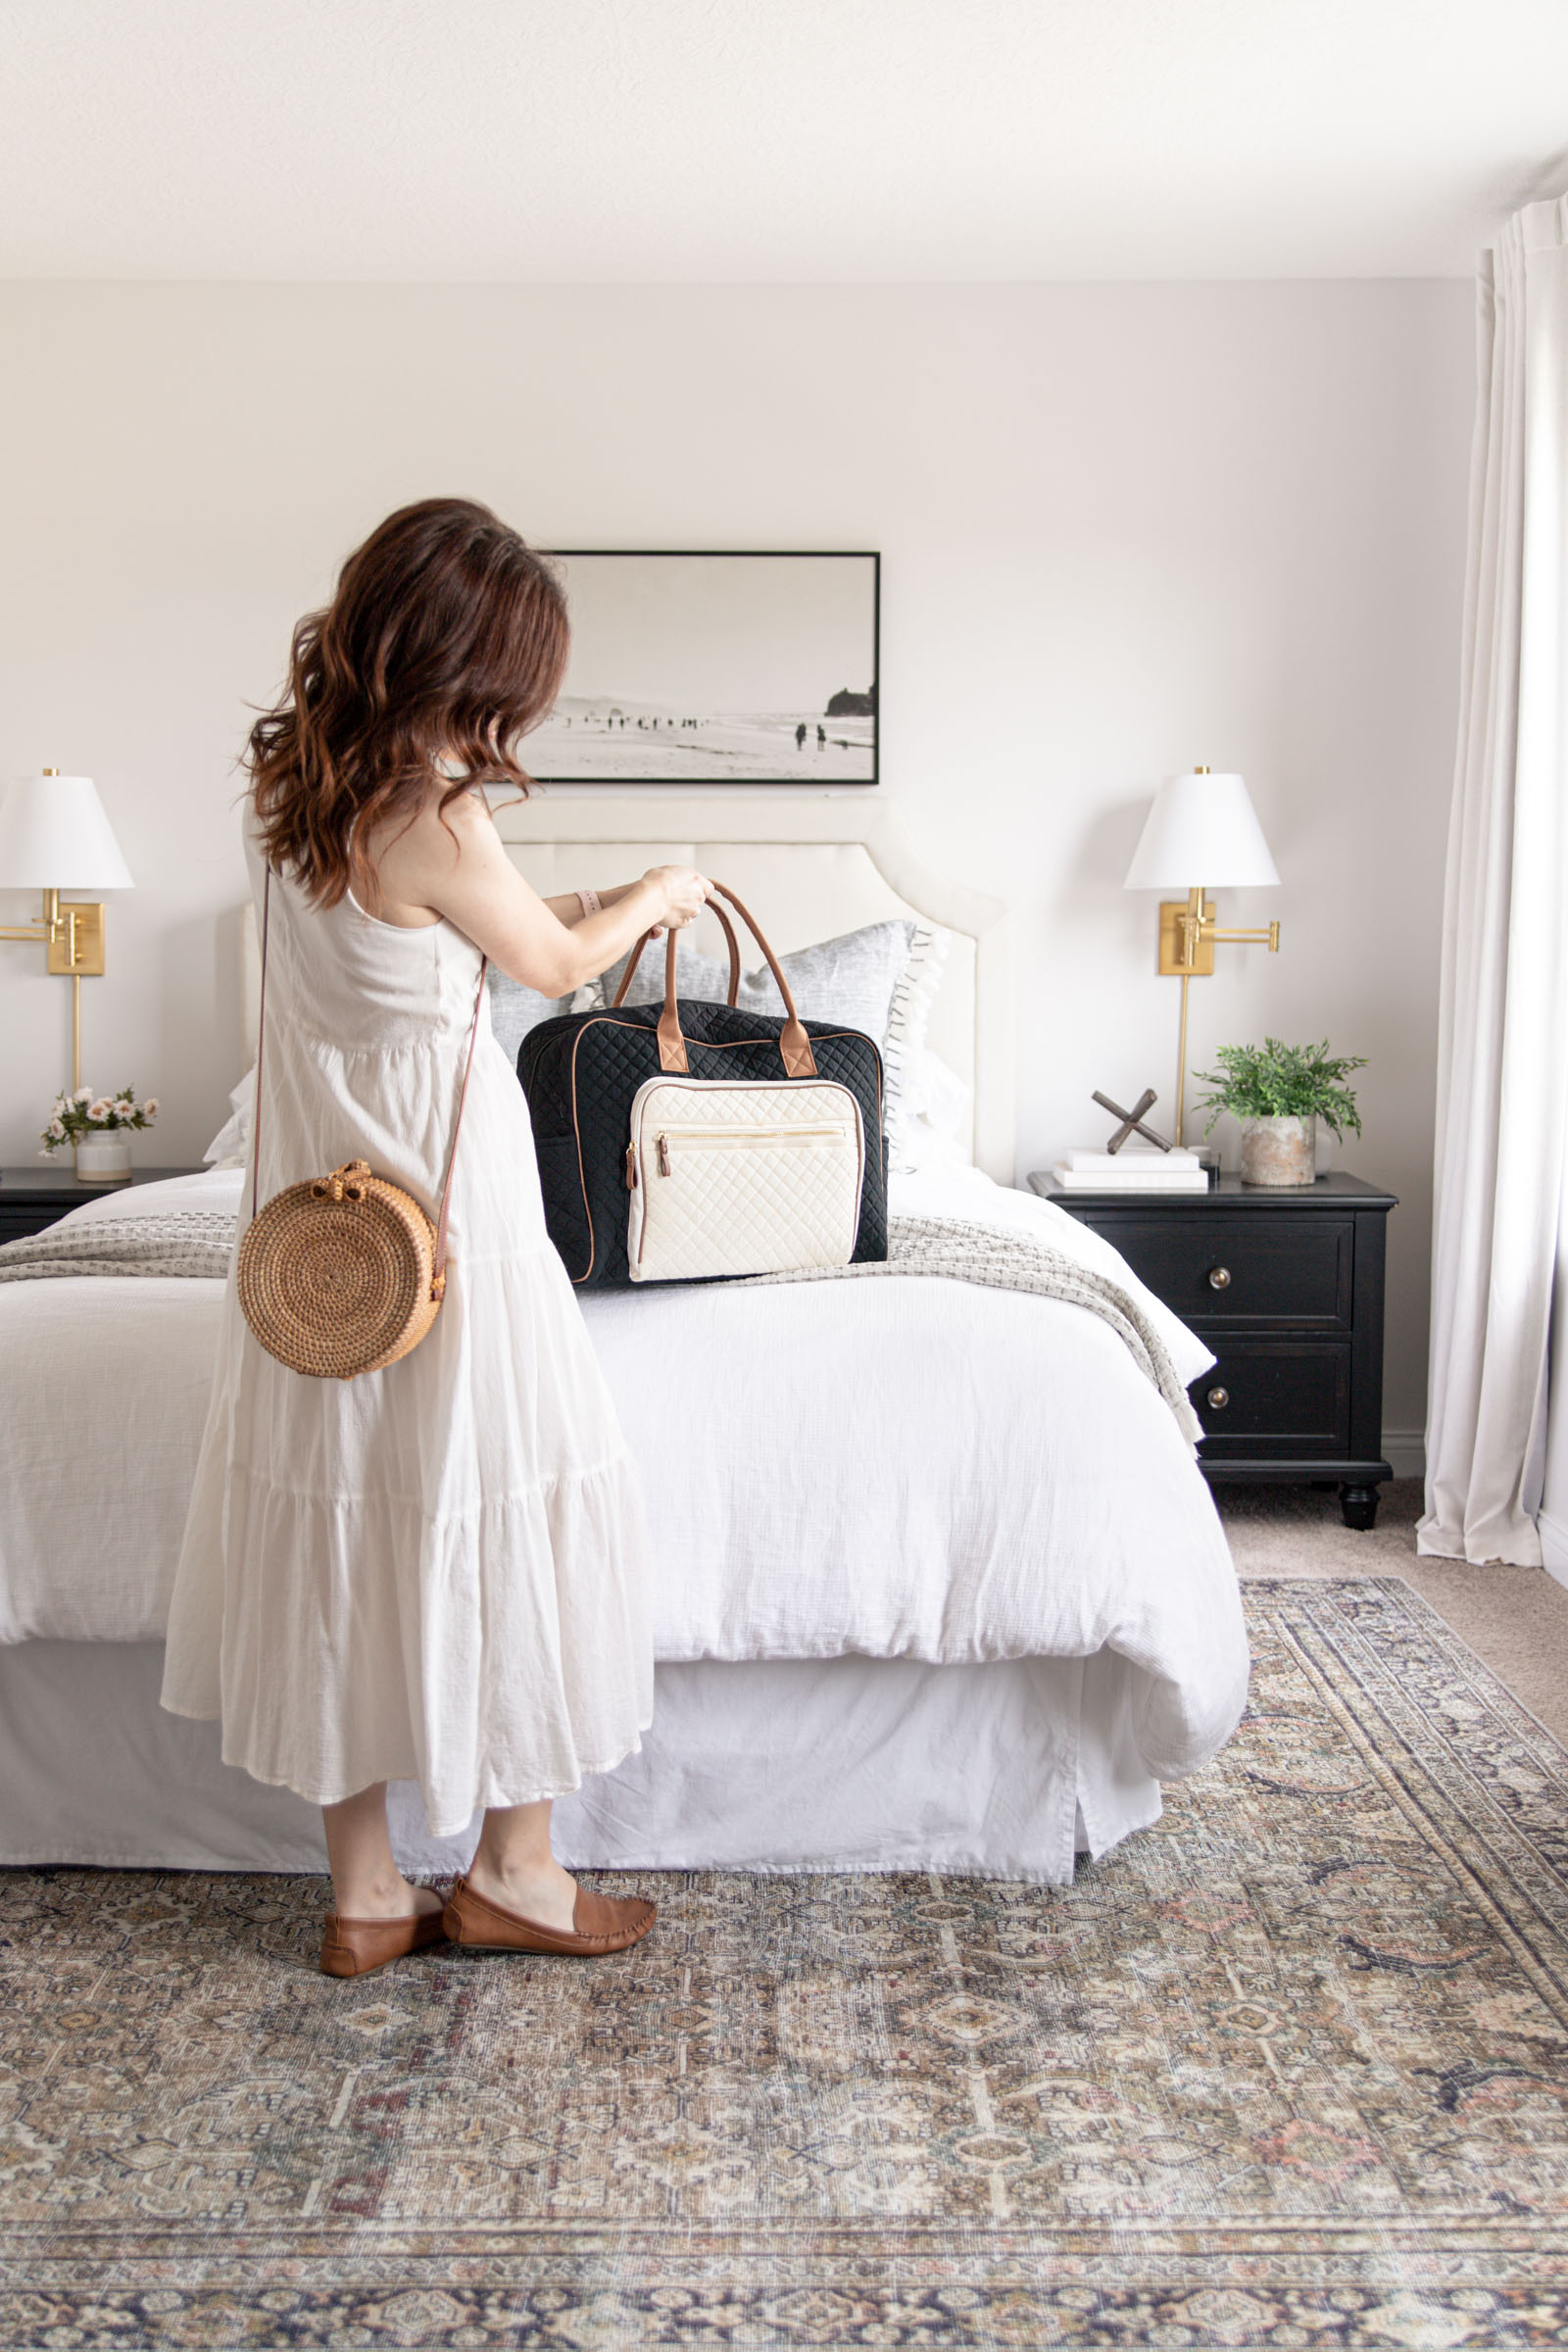 Affordable Hosting and Travel Finds with Walmart | quilted weekender bag, round rattan woven straw crossbody bag, loll Layla olive charcoal rug under bed